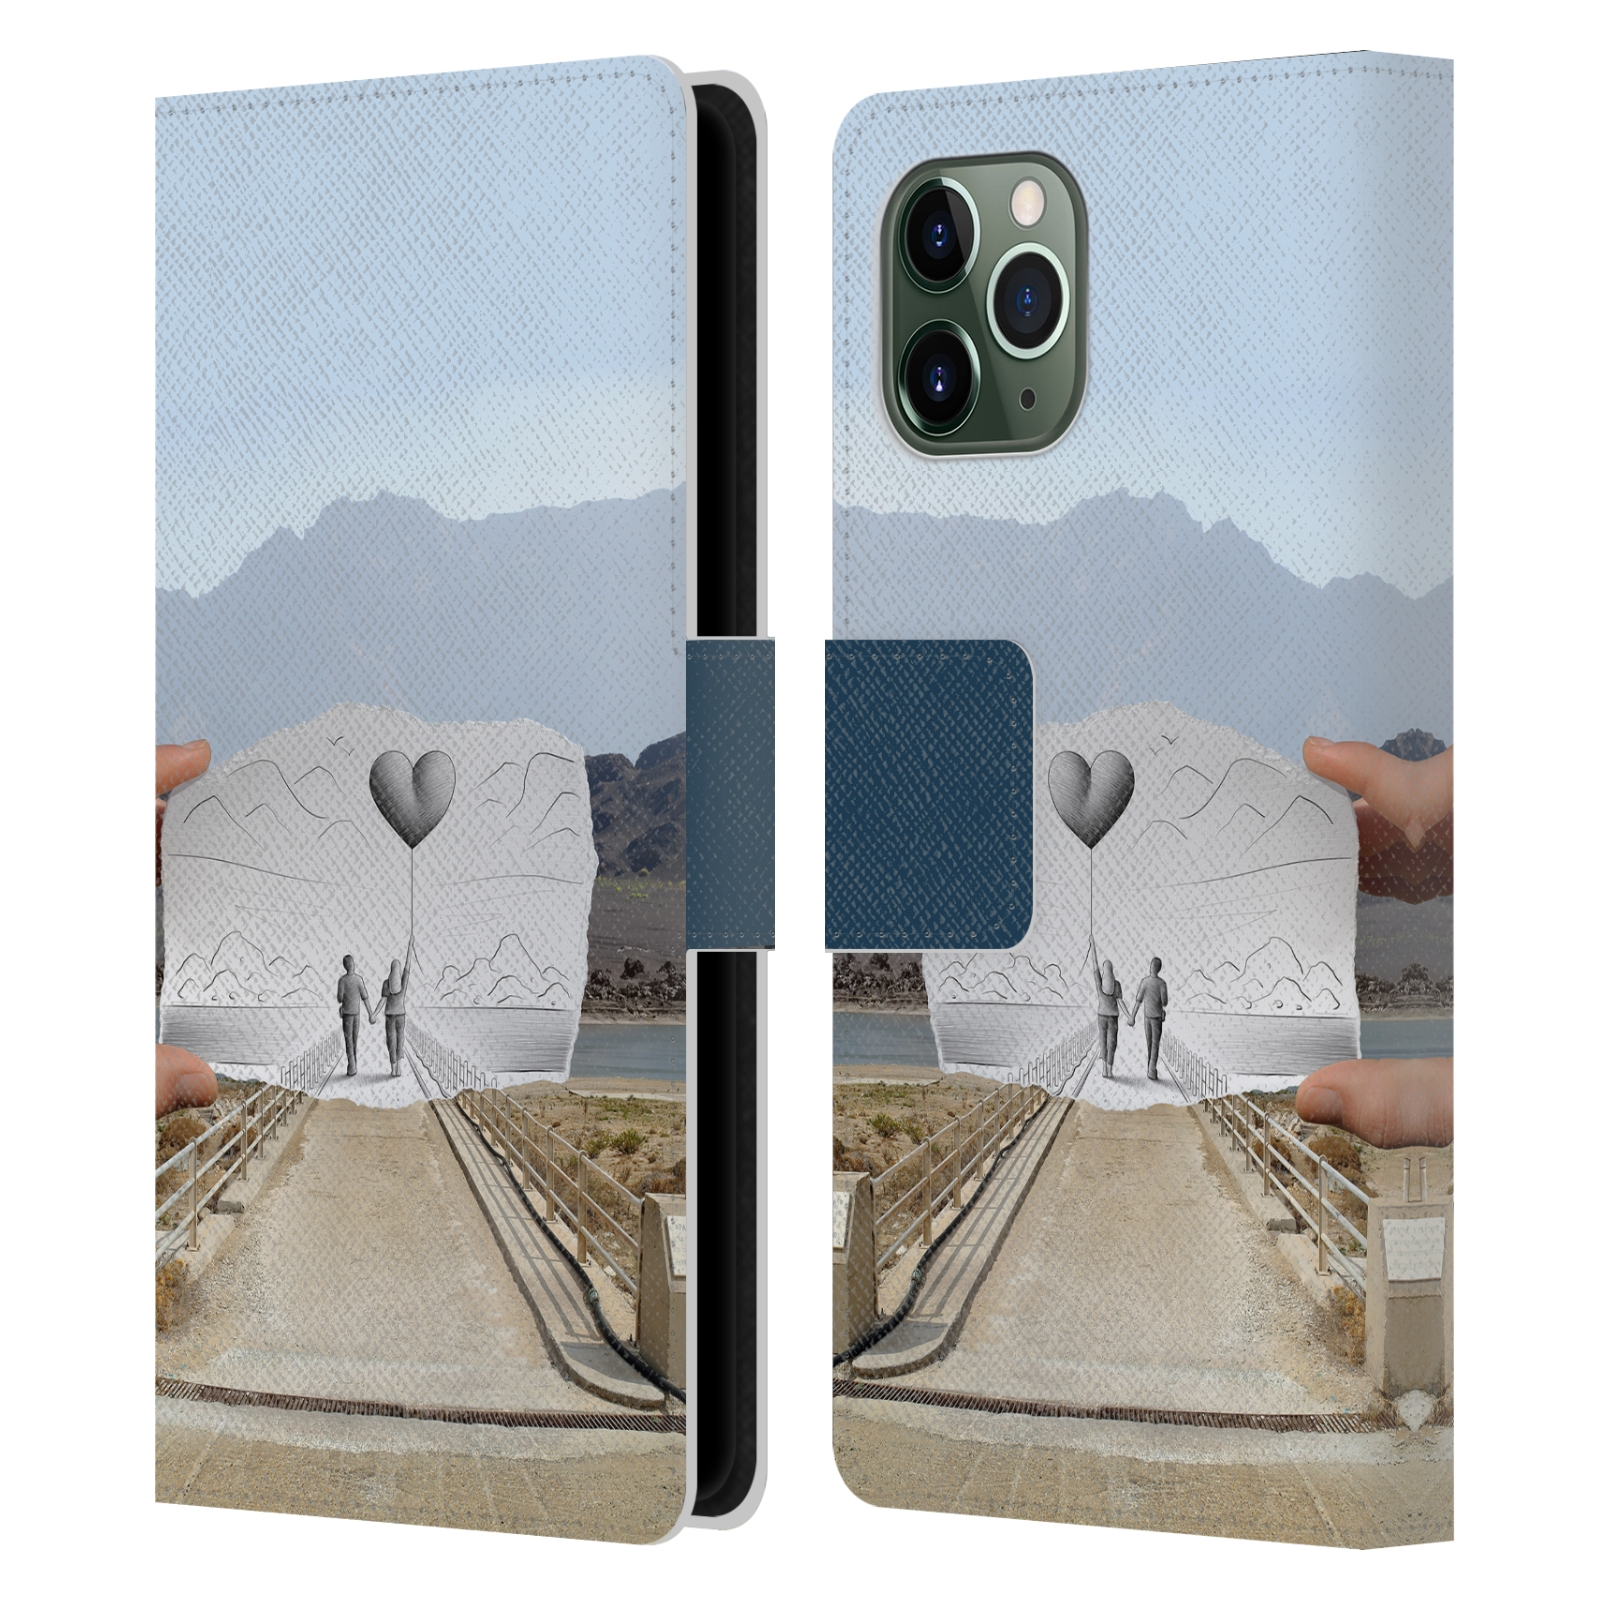 Official Ben Heine Pencil Vs Camera Love 2 Leather Book Wallet Case For Apple iPhone 11 Pro